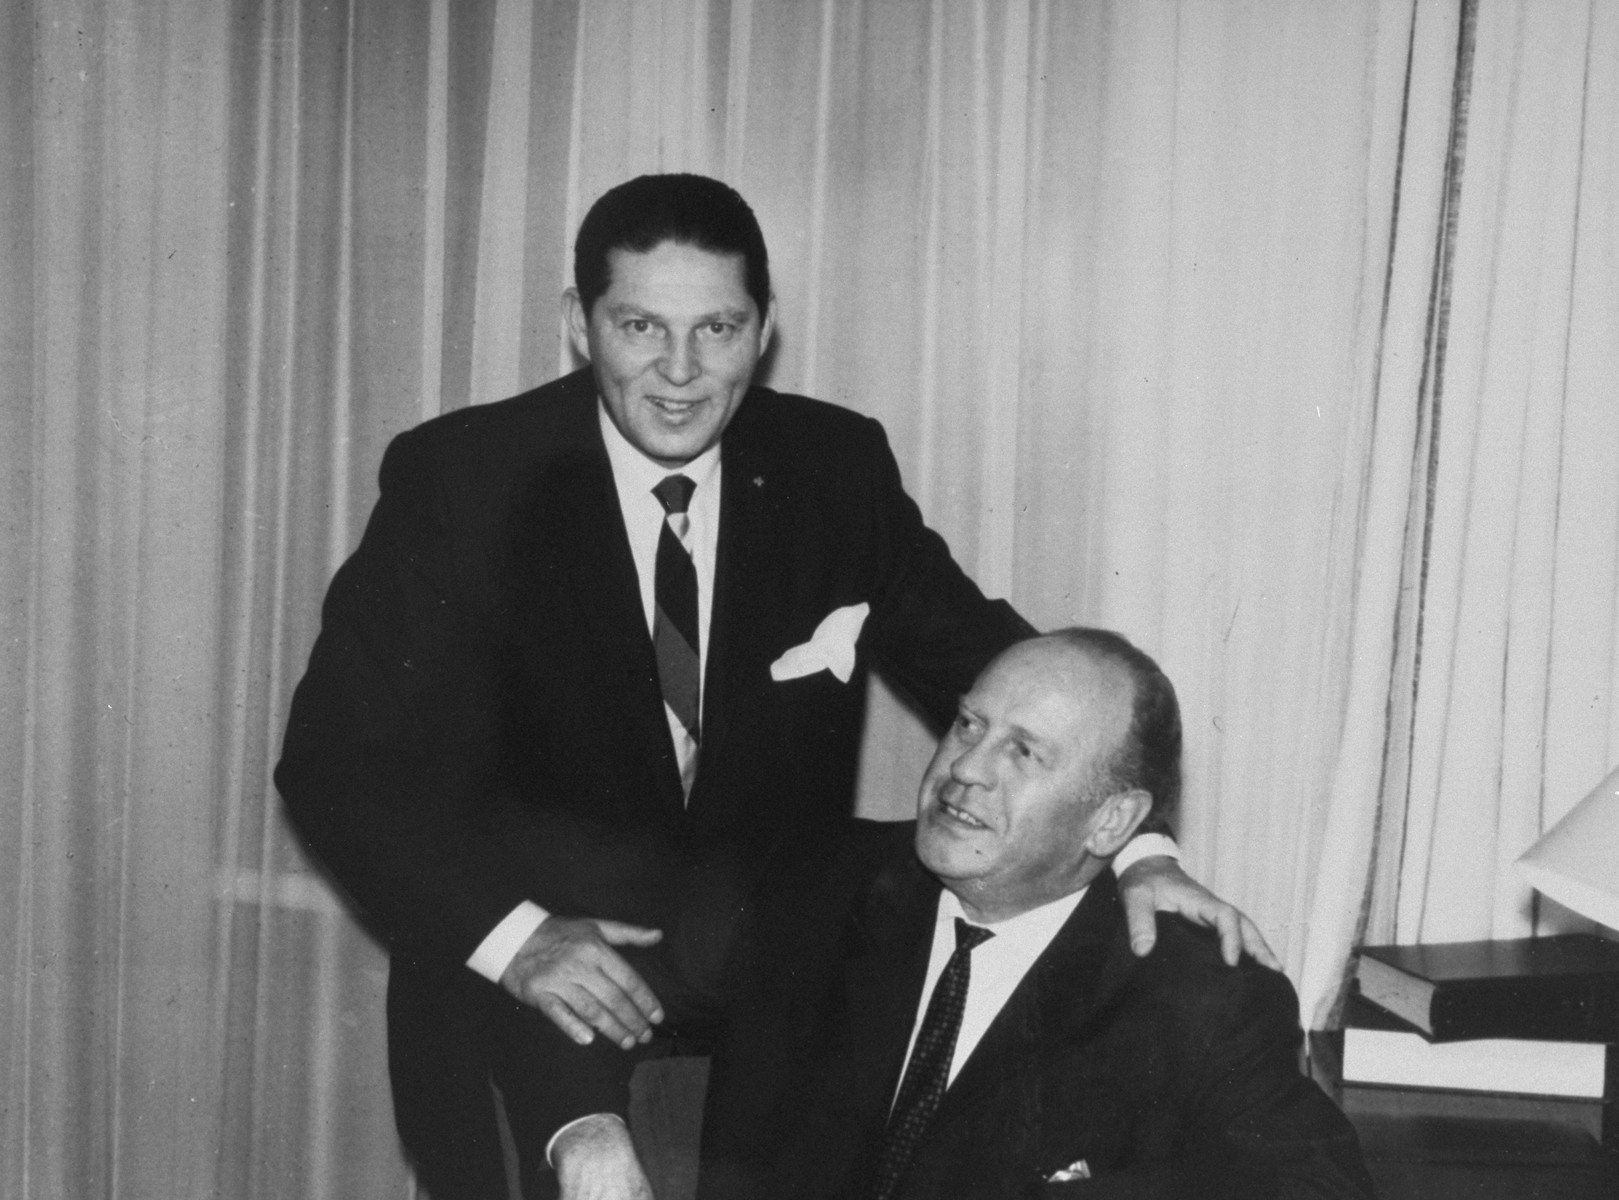 Oskar Schindler (seated) with Leopold Pfefferberg, who was saved by Schindler.